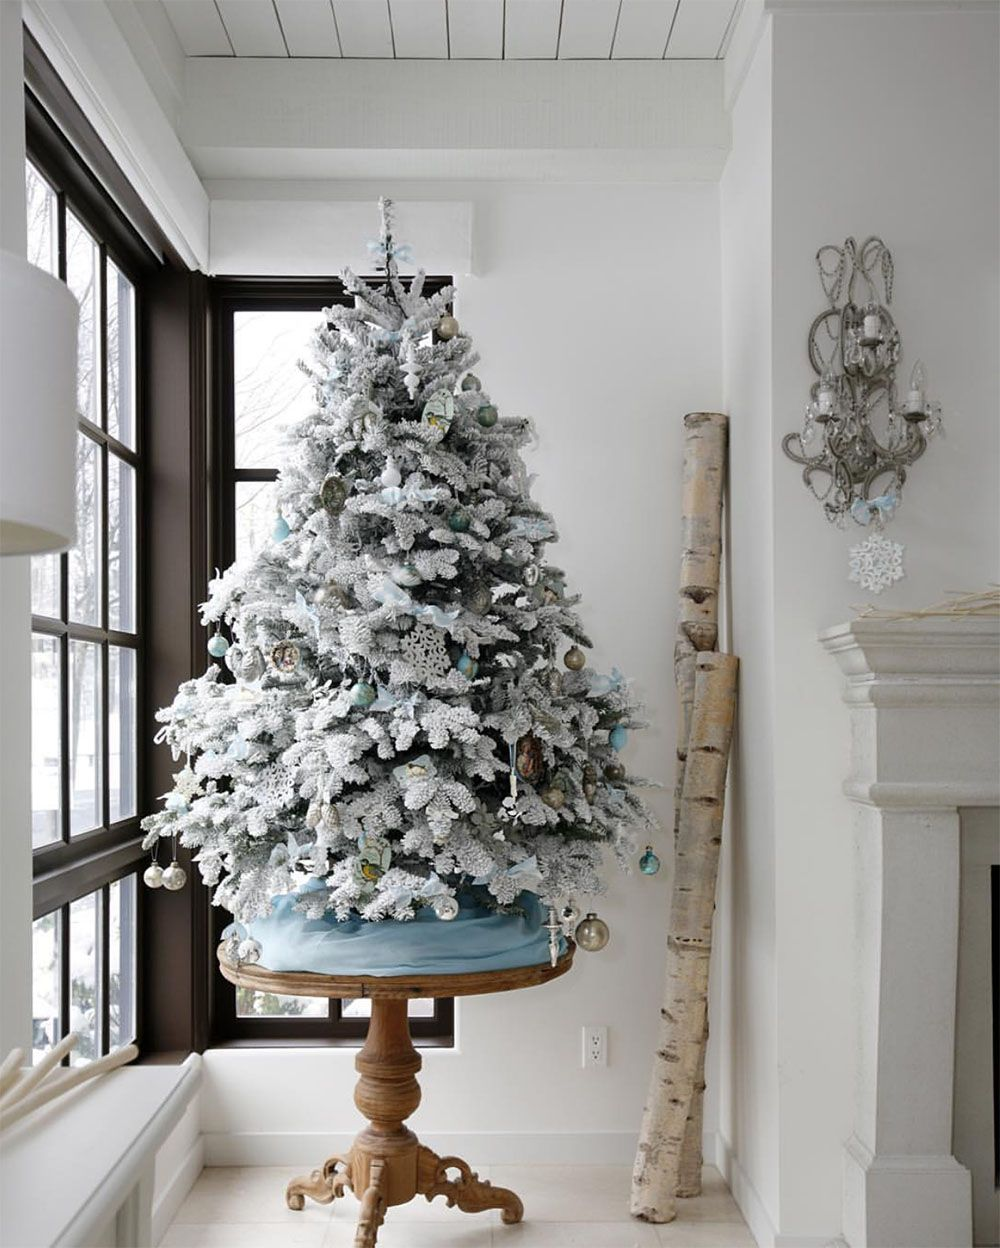 Day 11 A 1000 Shopping Spree To The Cross White Christmas Trees White Christmas Tree Decorations Small White Christmas Tree